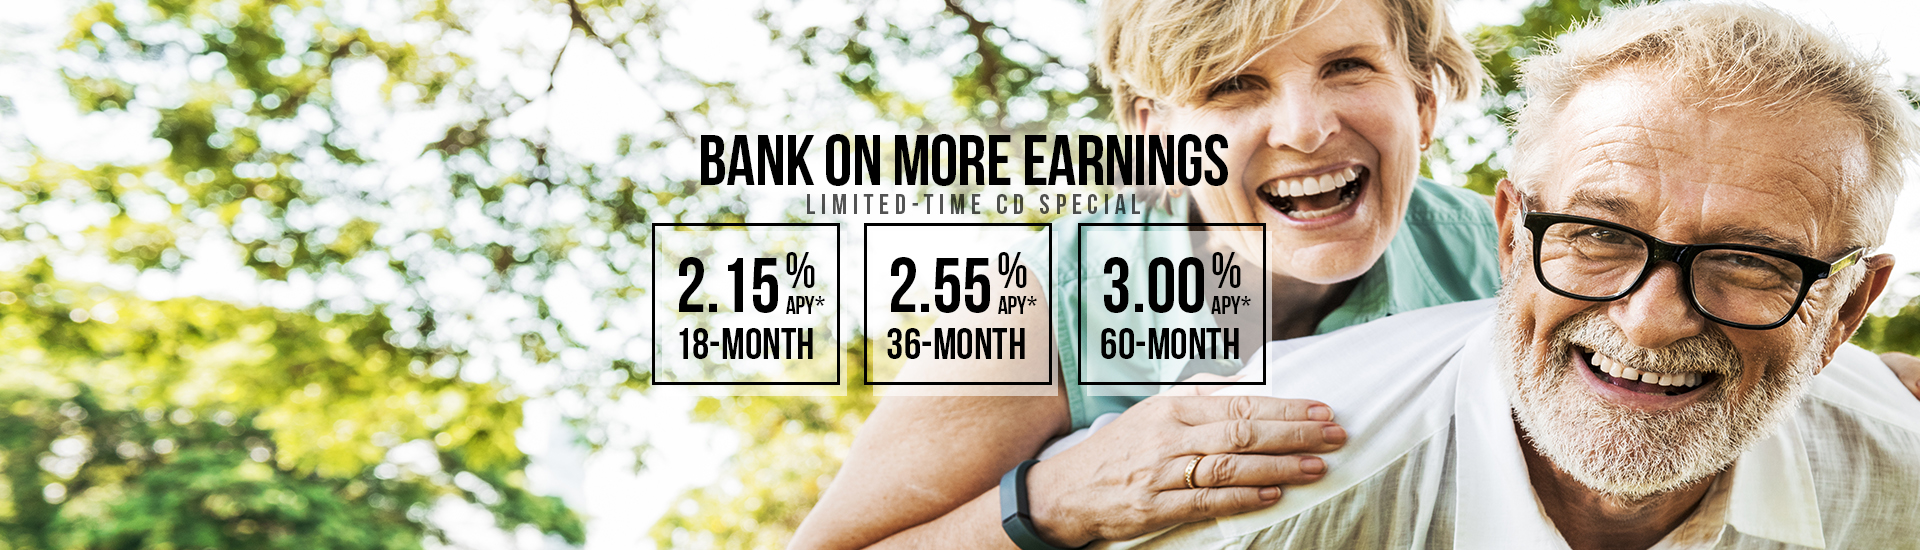 CD Special July 2018 Bank-On-More-Earnings-Rotator